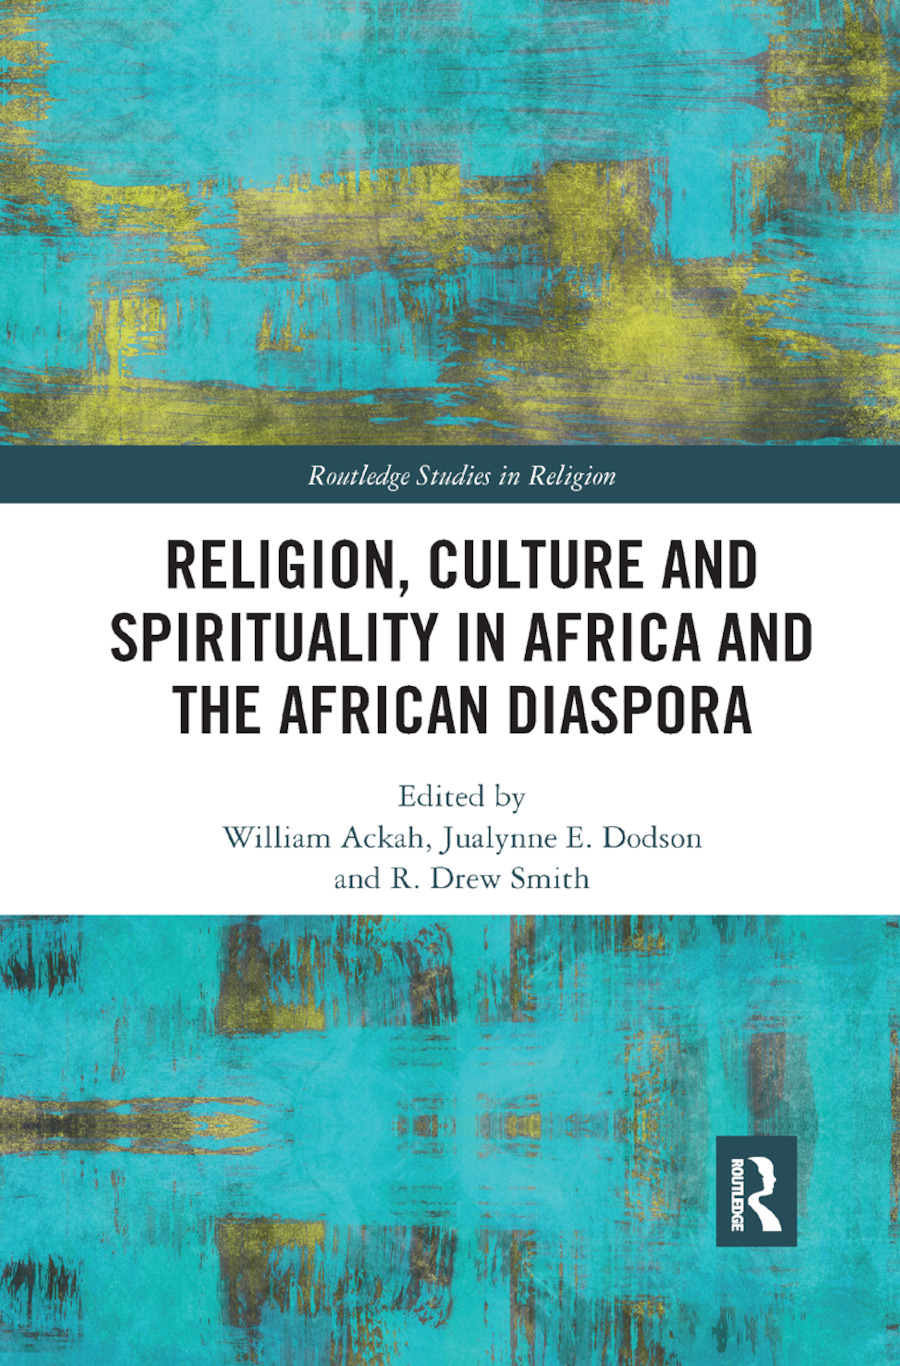 Religion, Culture and Spirituality in Africa and the African Diaspora book cover